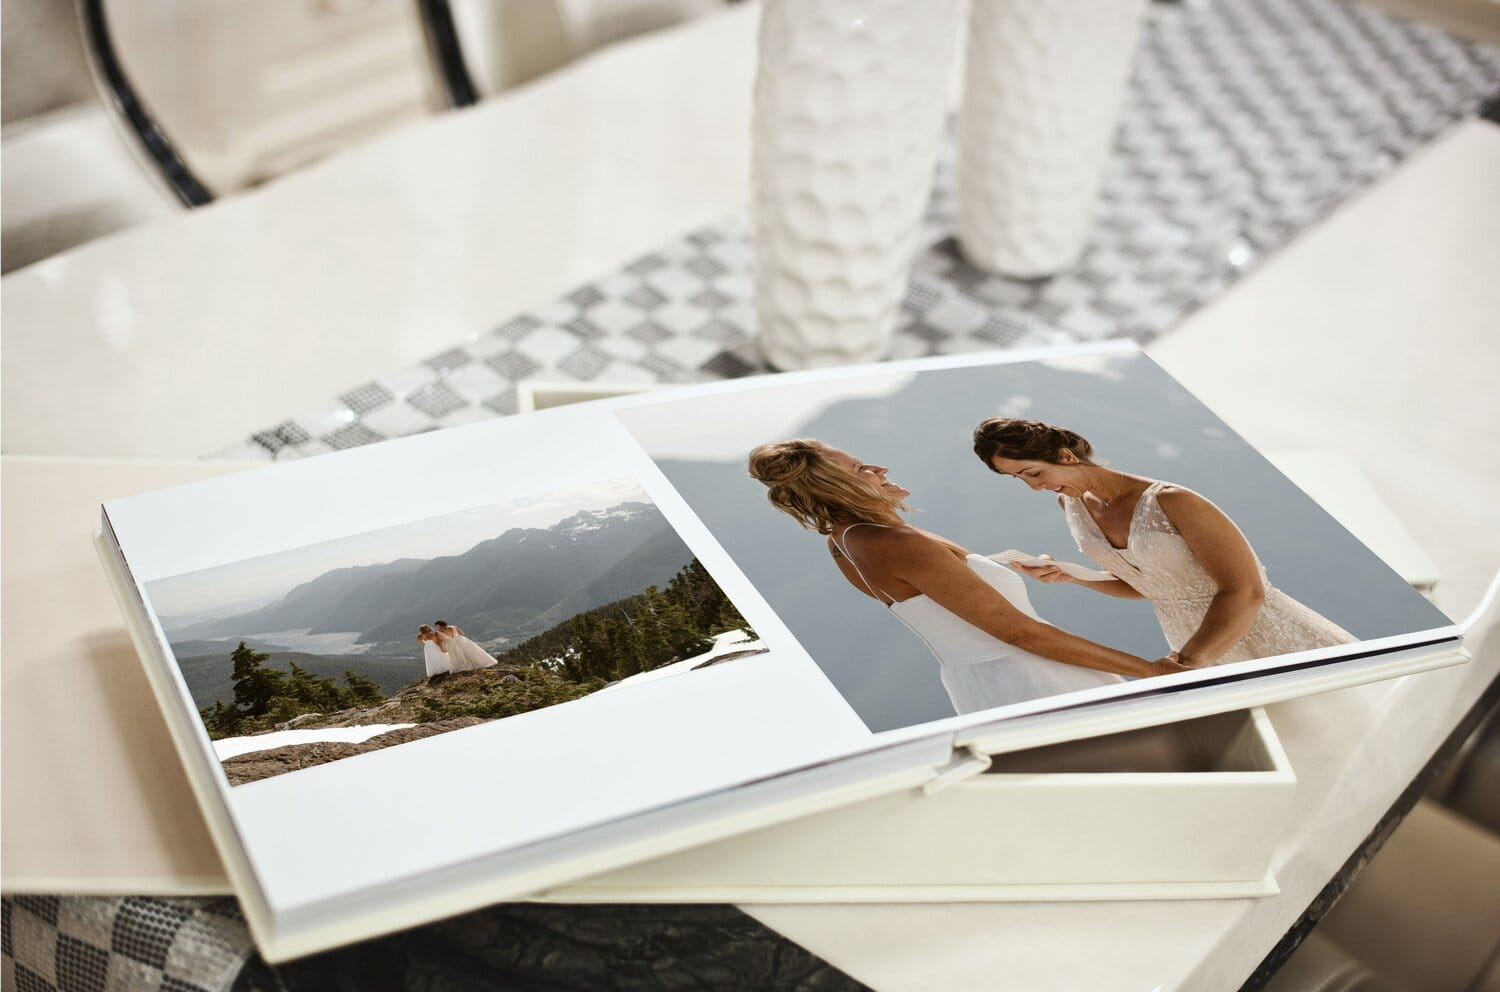 A wedding photo album sits on a table.